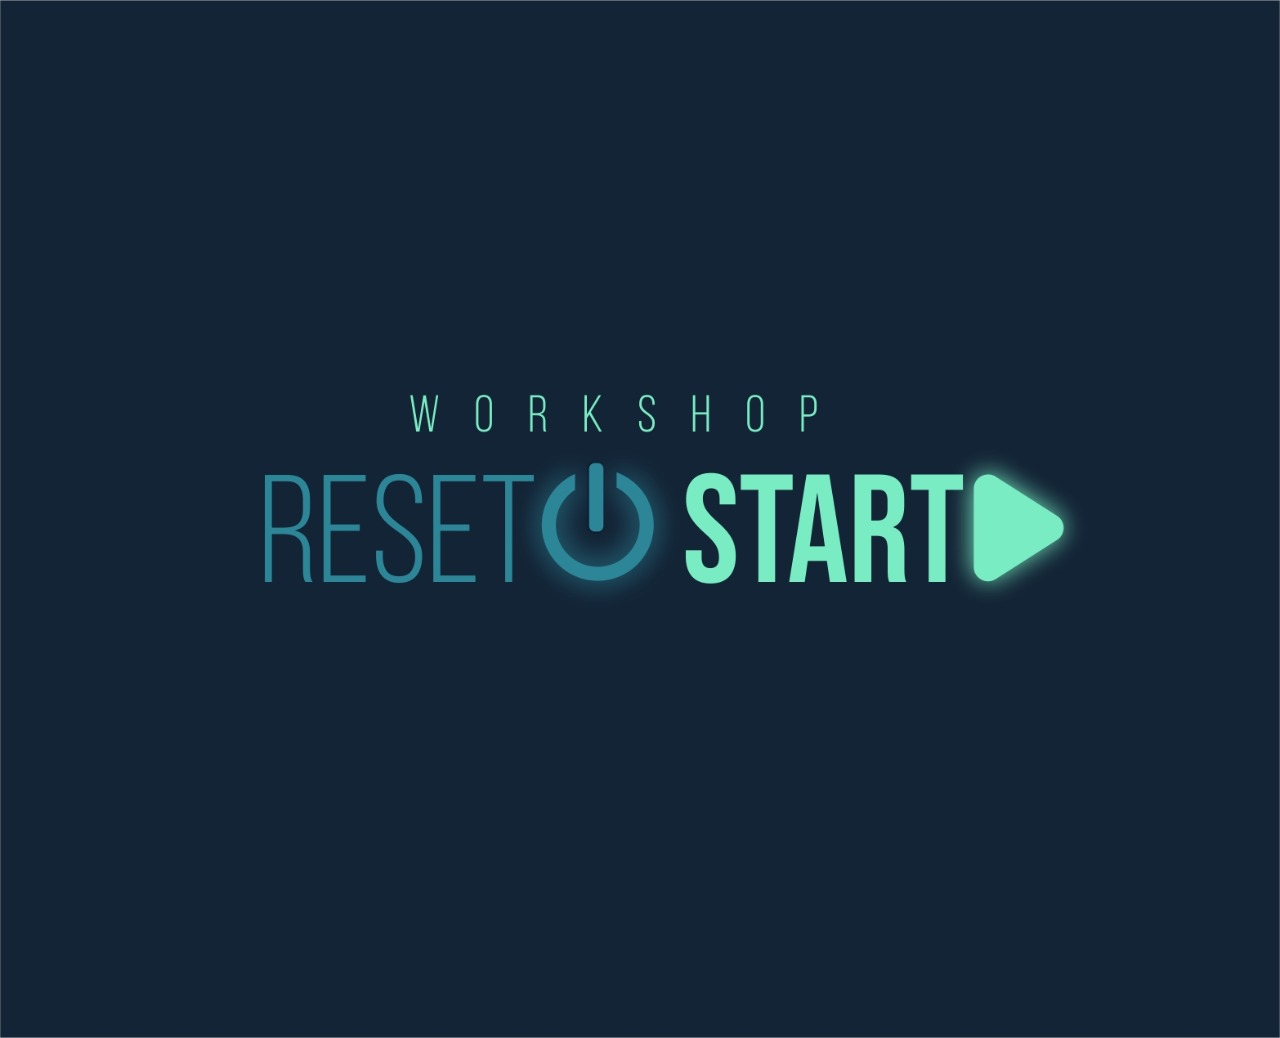 INICIA HOJE O WORKSHOP RESET/START